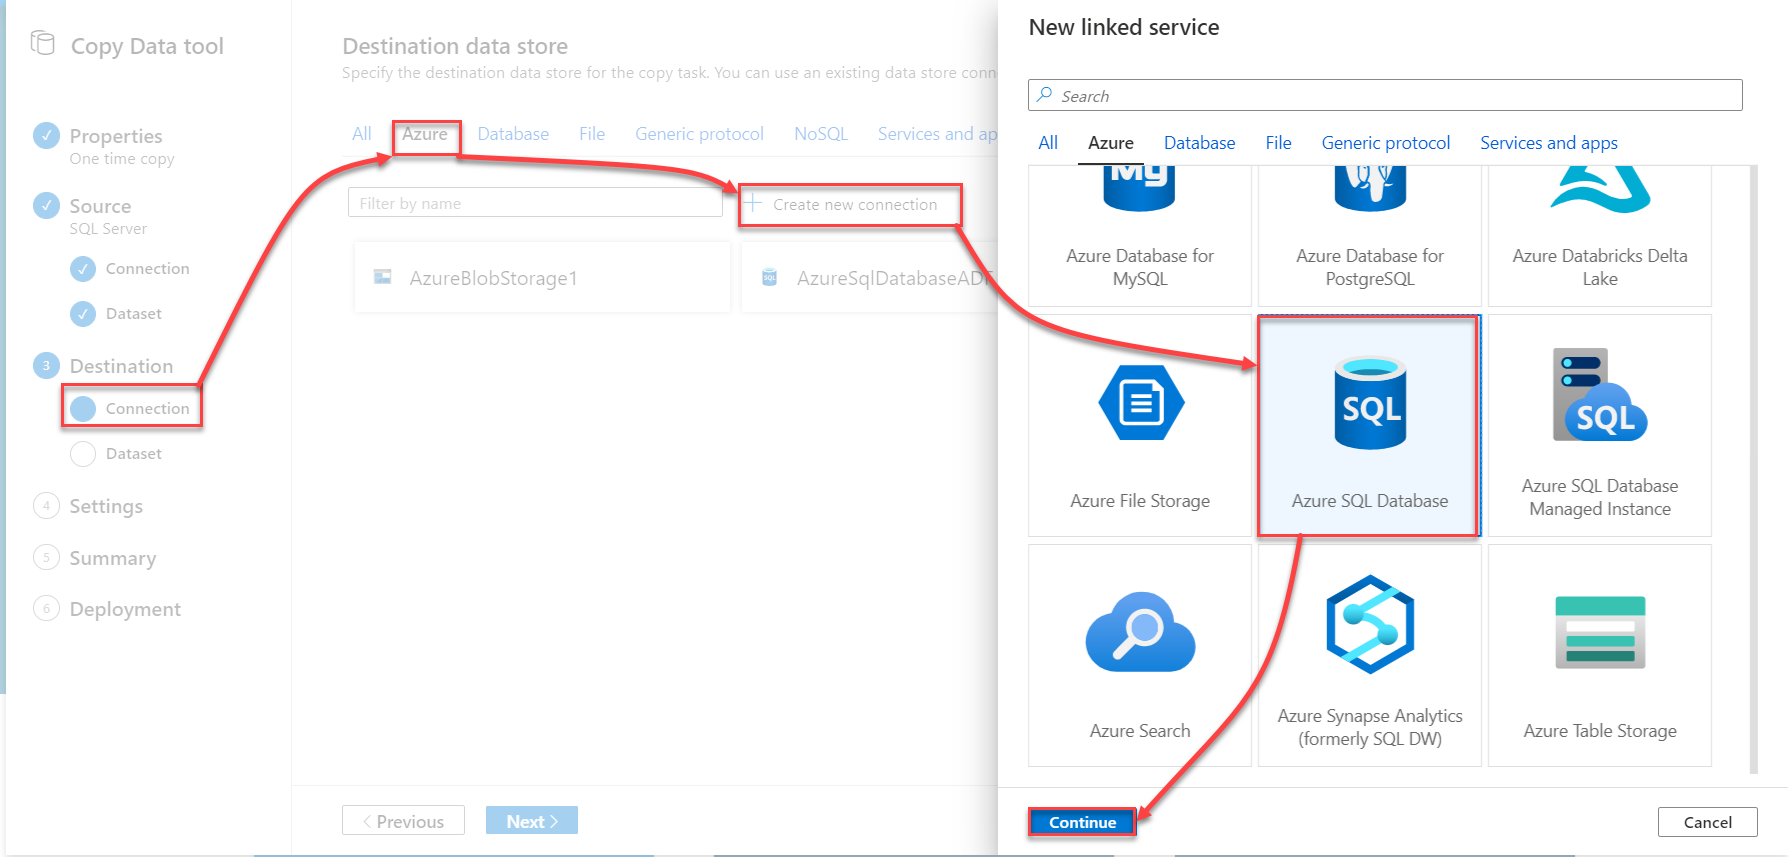 Copy data from On-premises data store to an Azure data store using Azure Data Factory